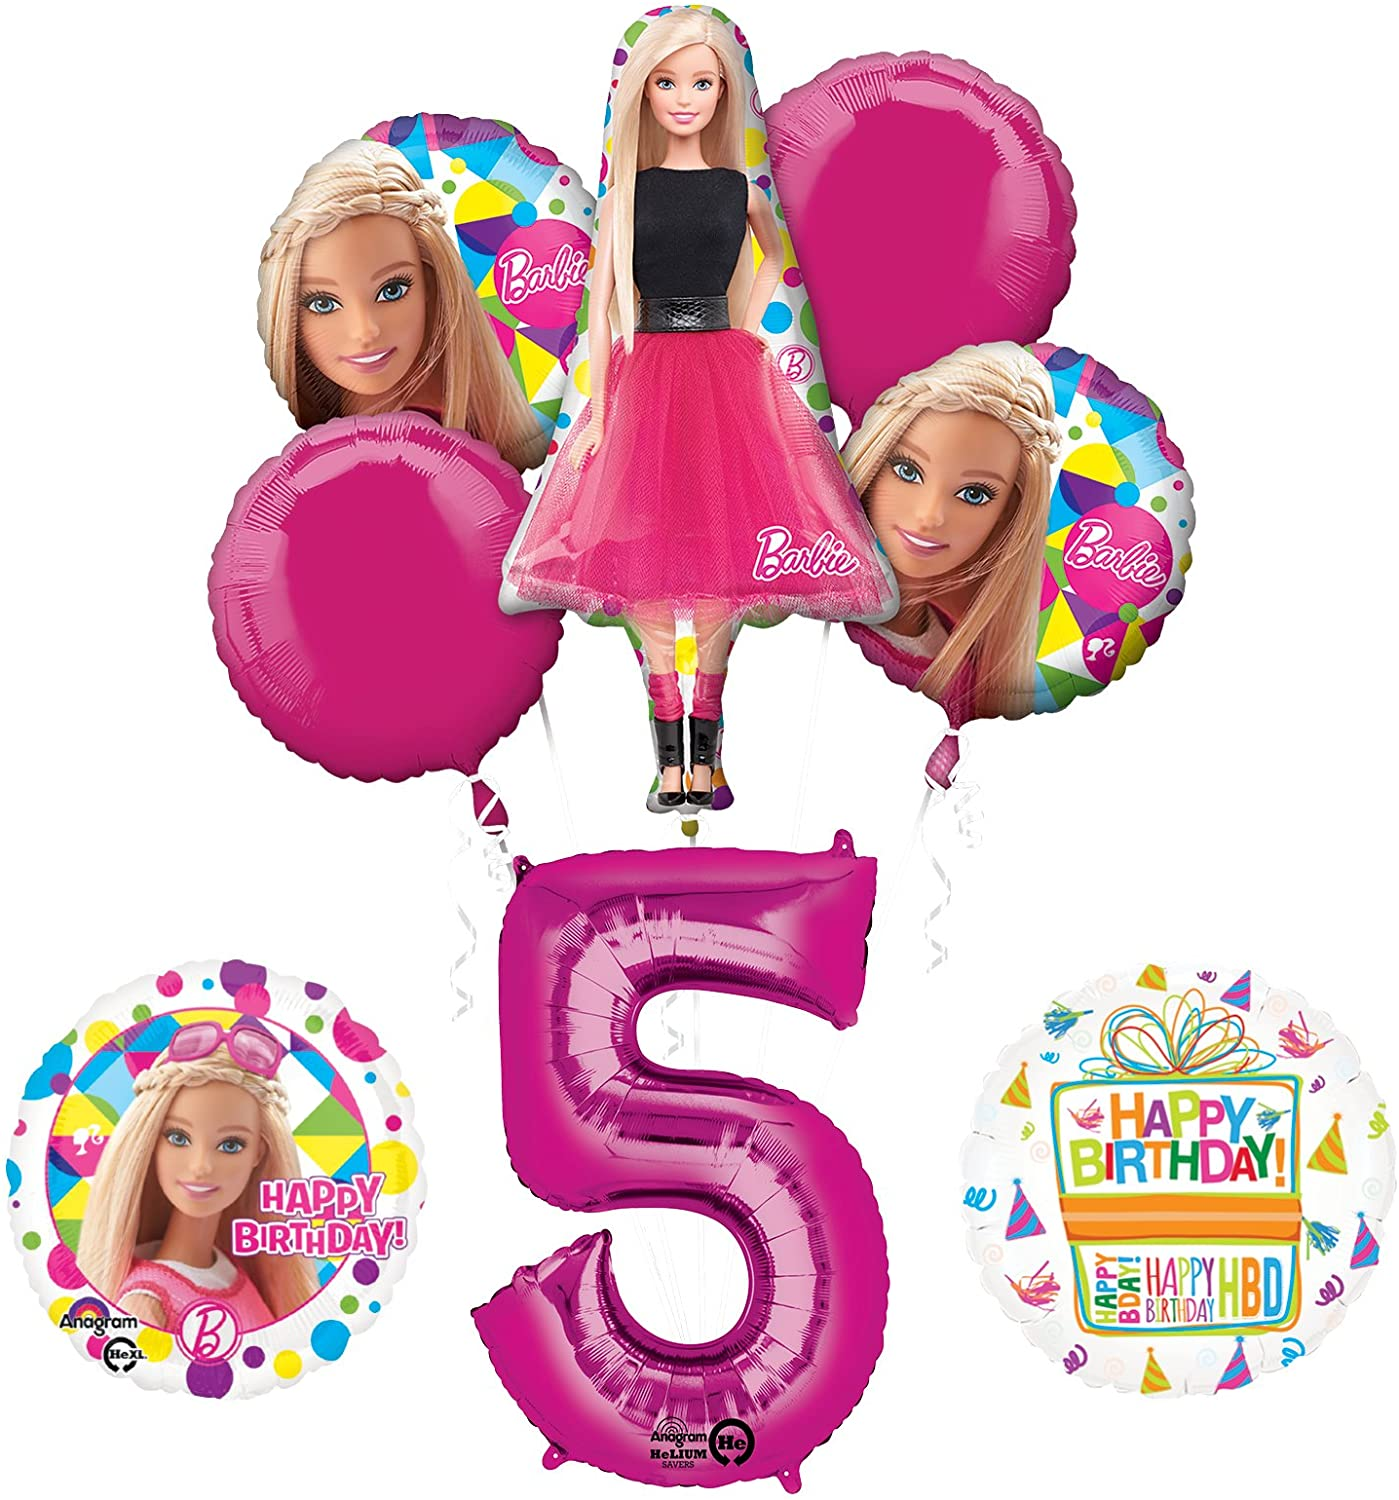 Mayflower Barbie 5th Birthday Party Supplies and Balloon Bouquet Decorations